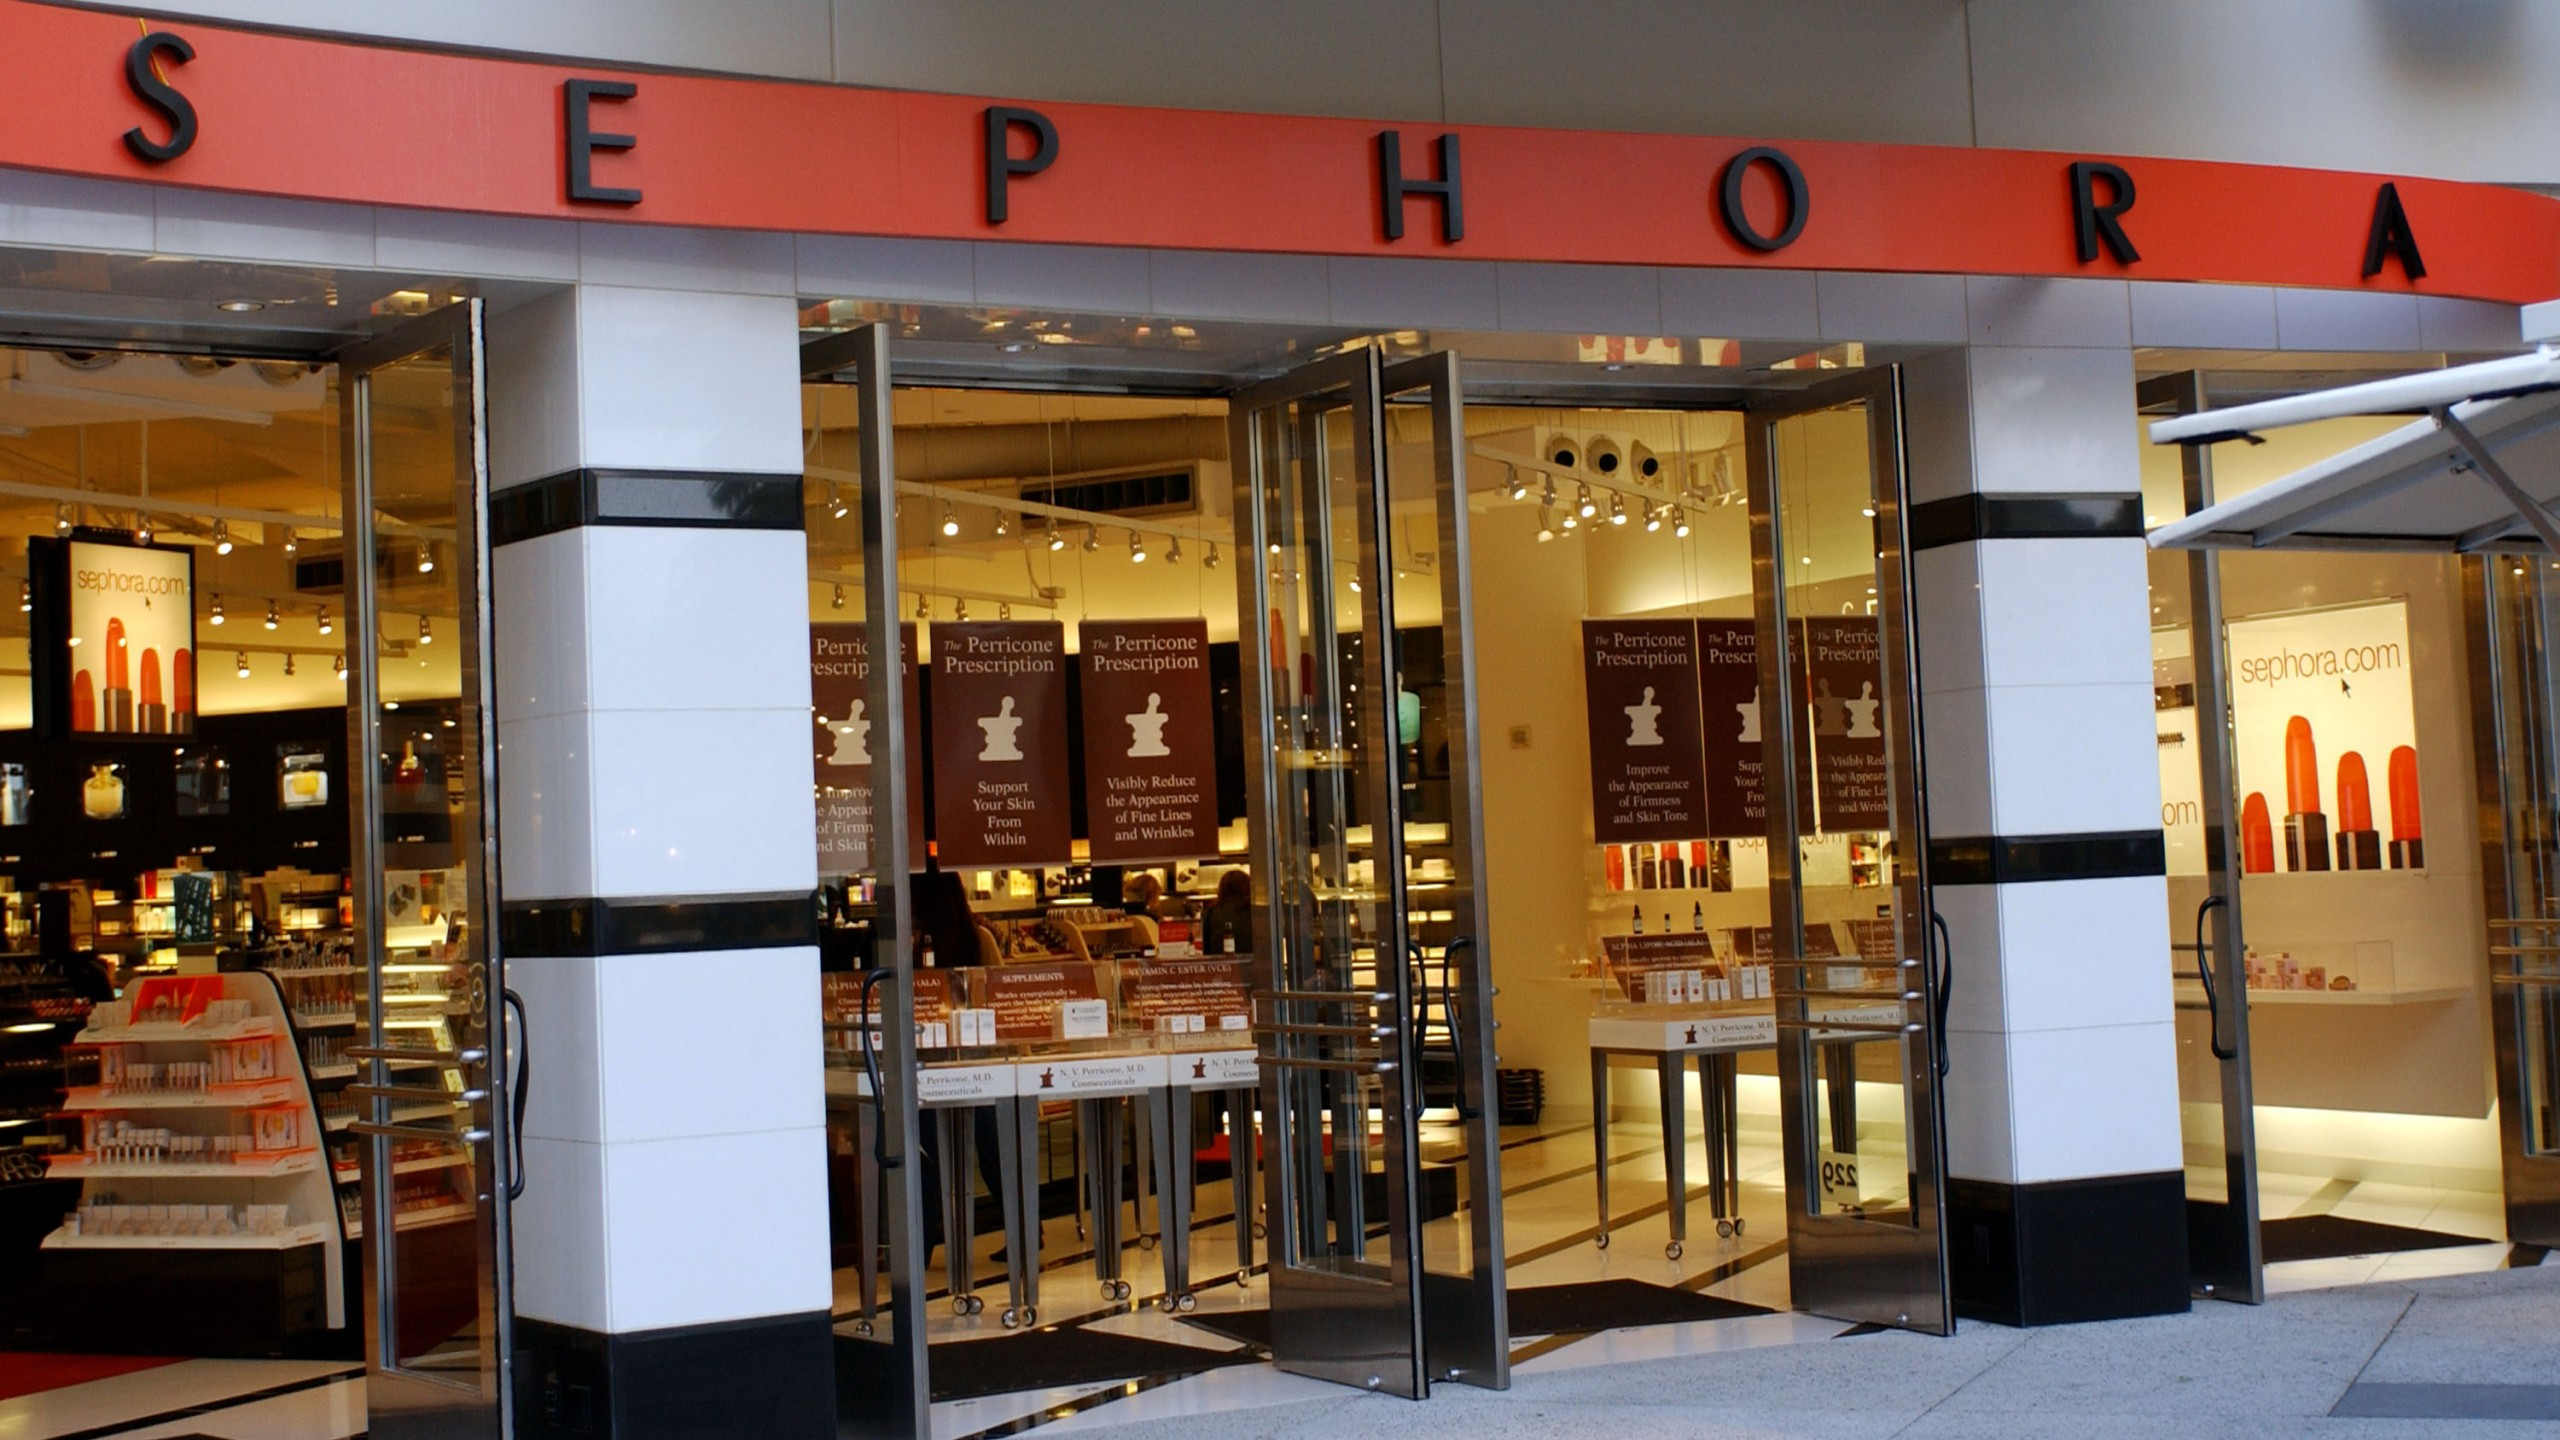 A Sephora store is photographed on Oct. 18, 2002 in Hollywood. (Credit: Jon Kopaloff/Getty Images)